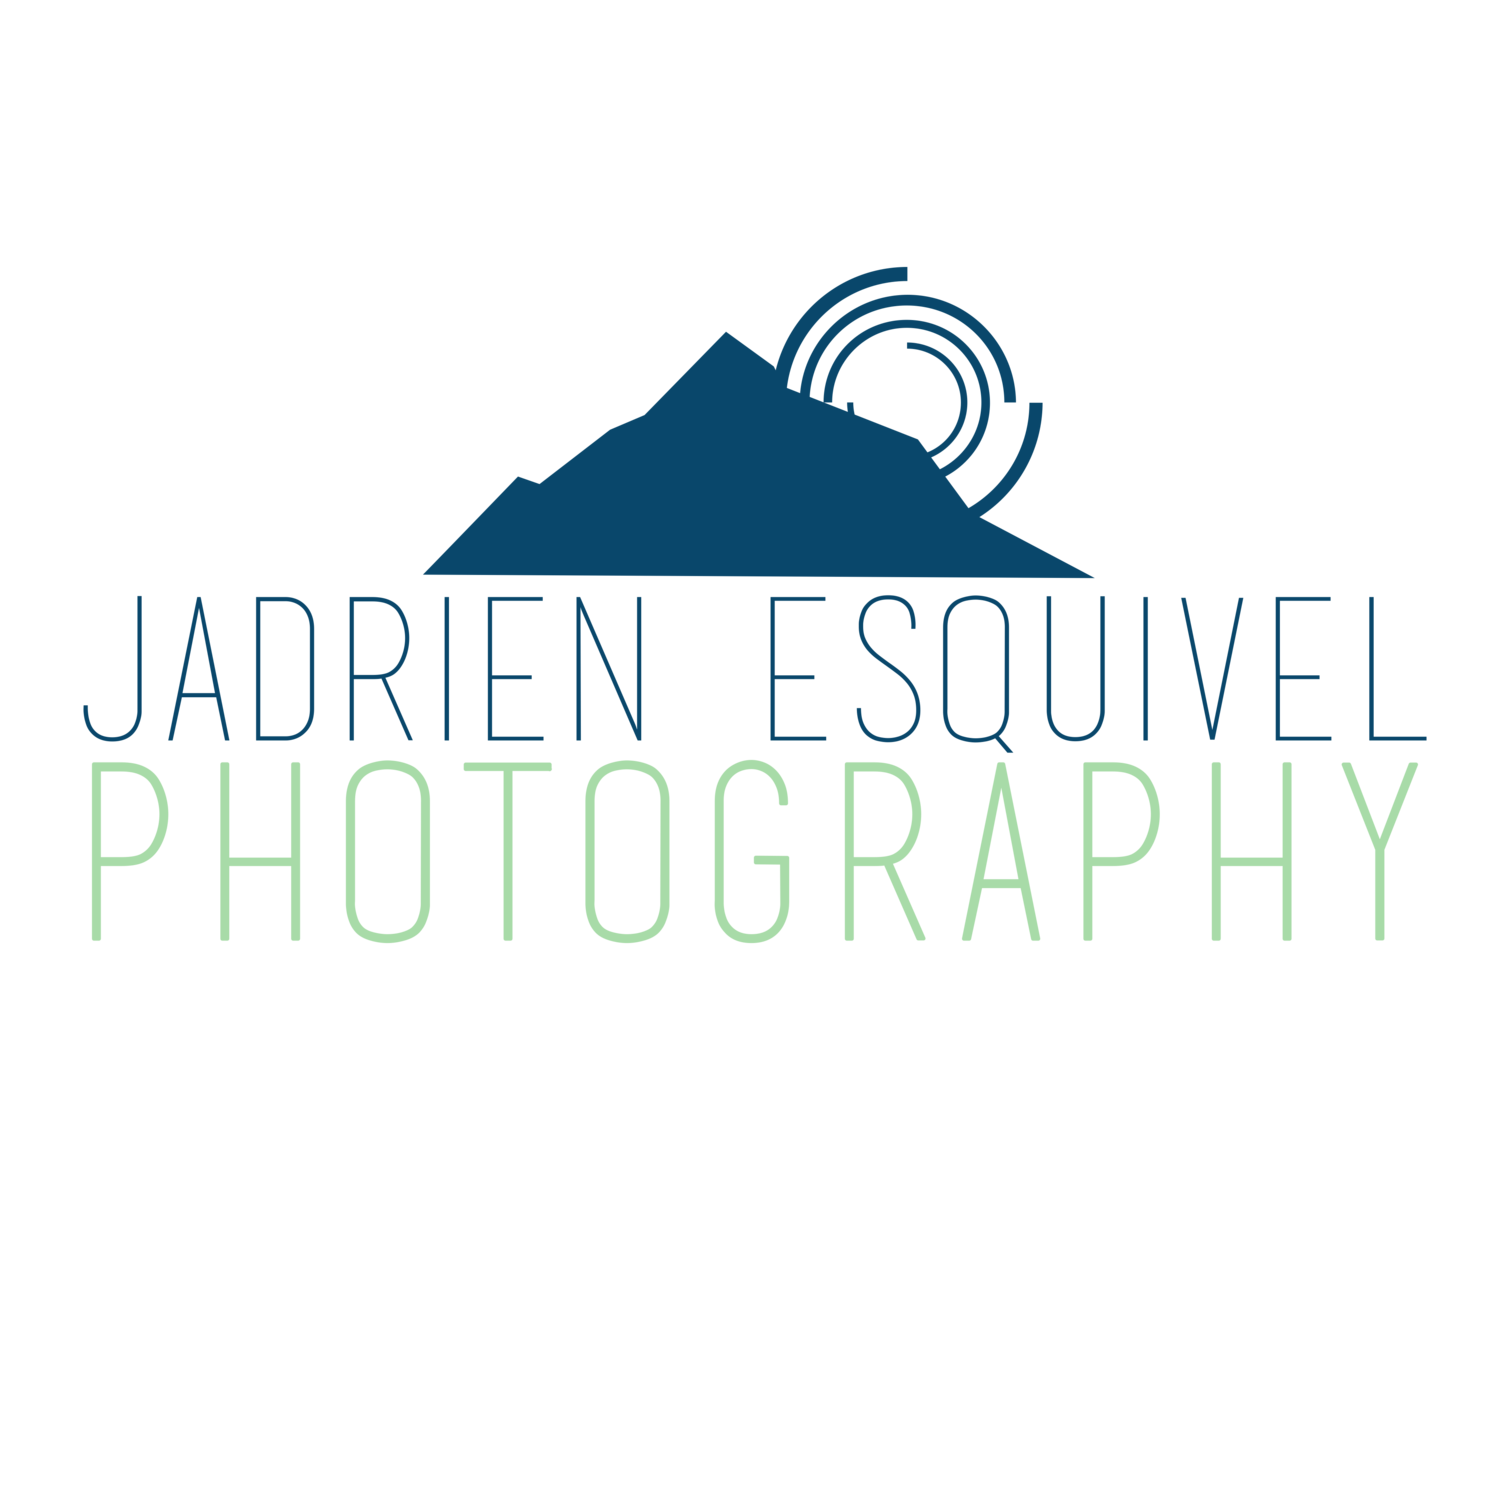 Jadrien Esquivel Photography